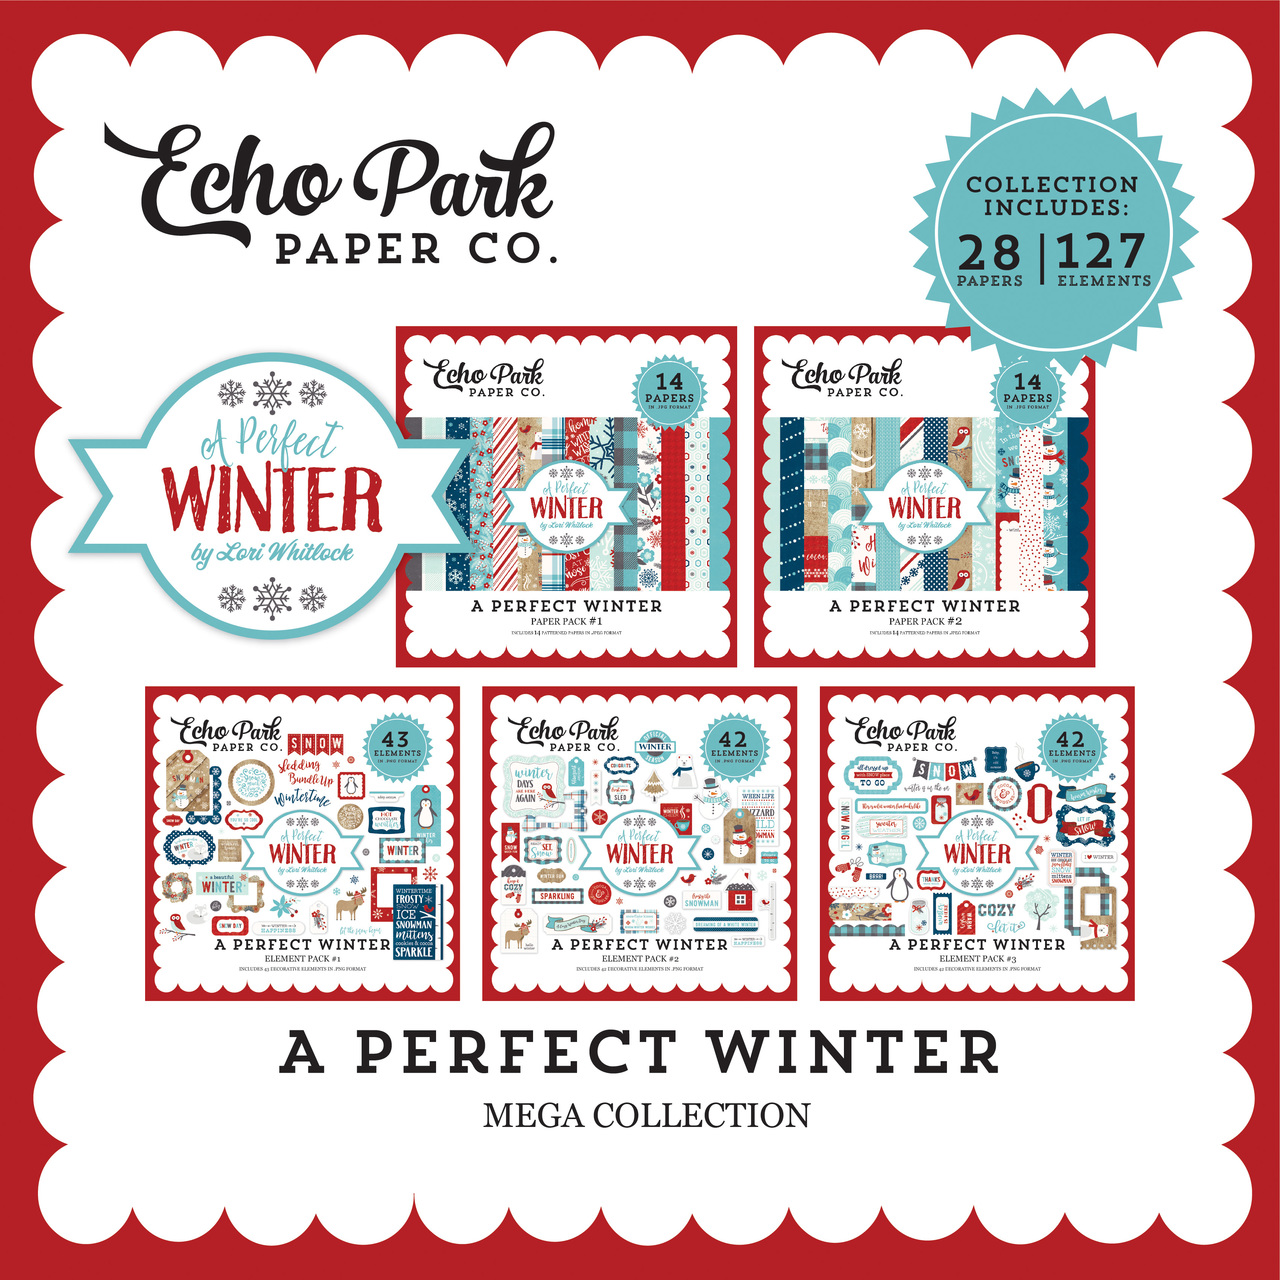 A Perfect Winter Mega Collection